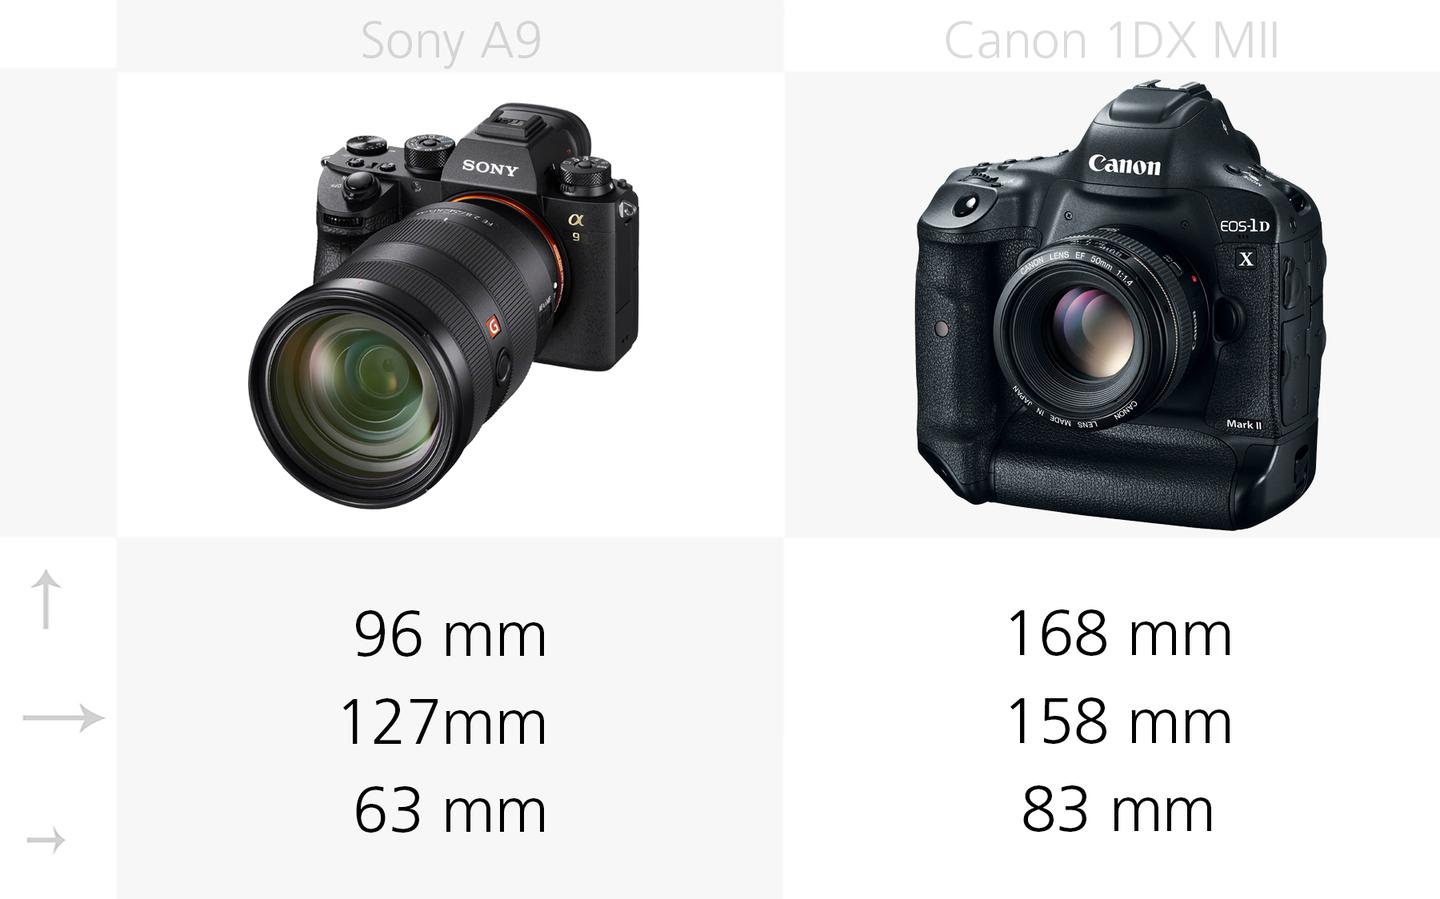 Comparing the dimensions of the Sony A9 and Canon 1DX Mark II